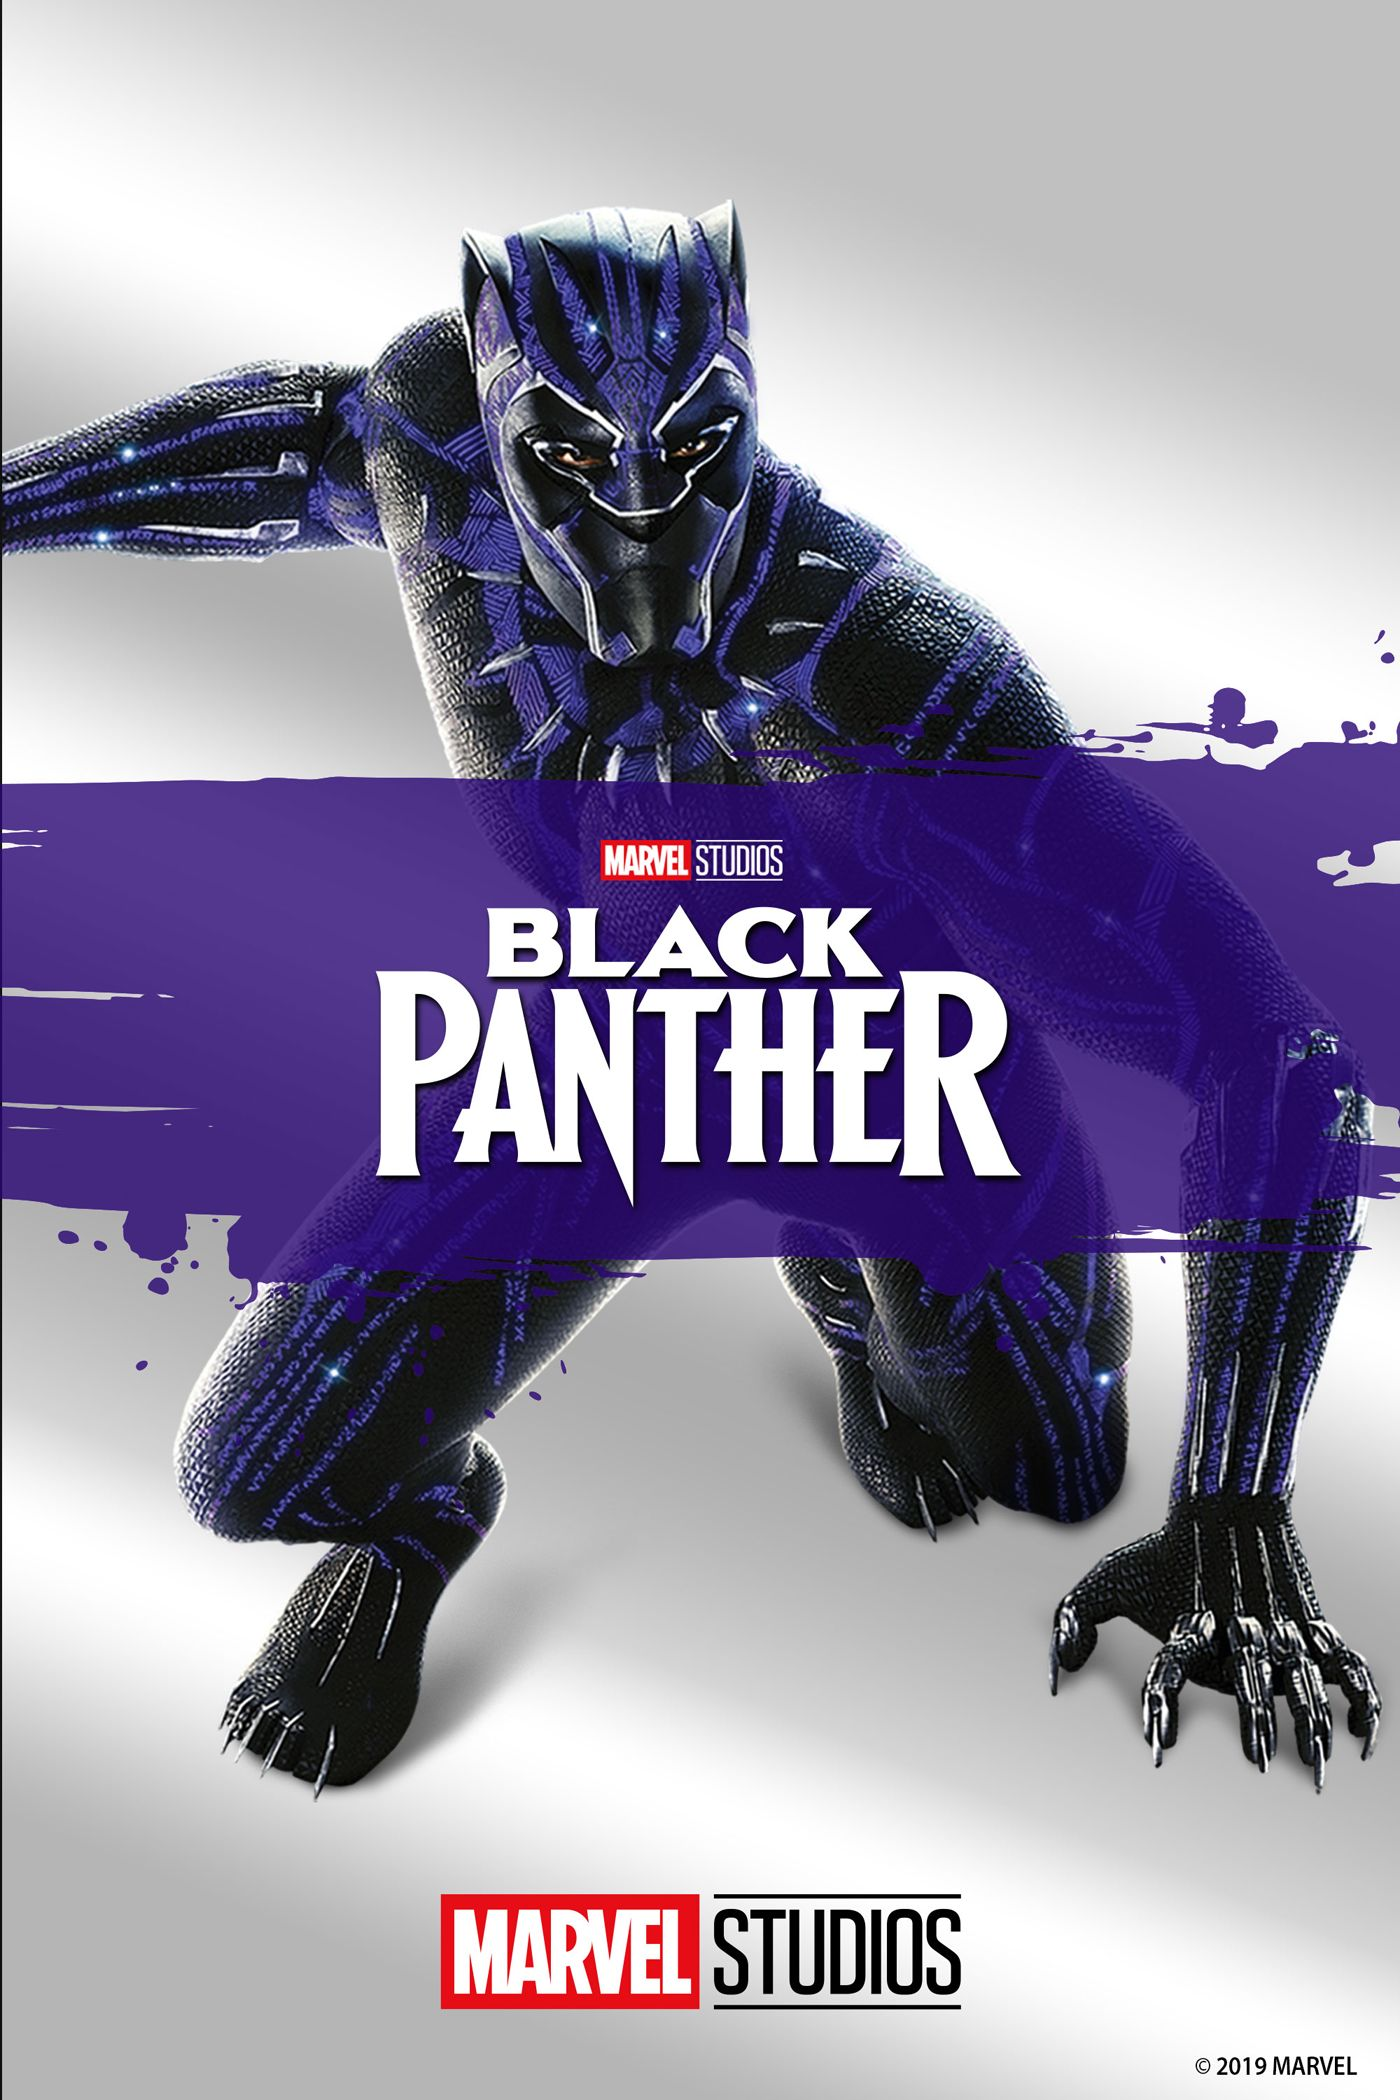 Black Panther (2018) | Full Movie | Movies Anywhere